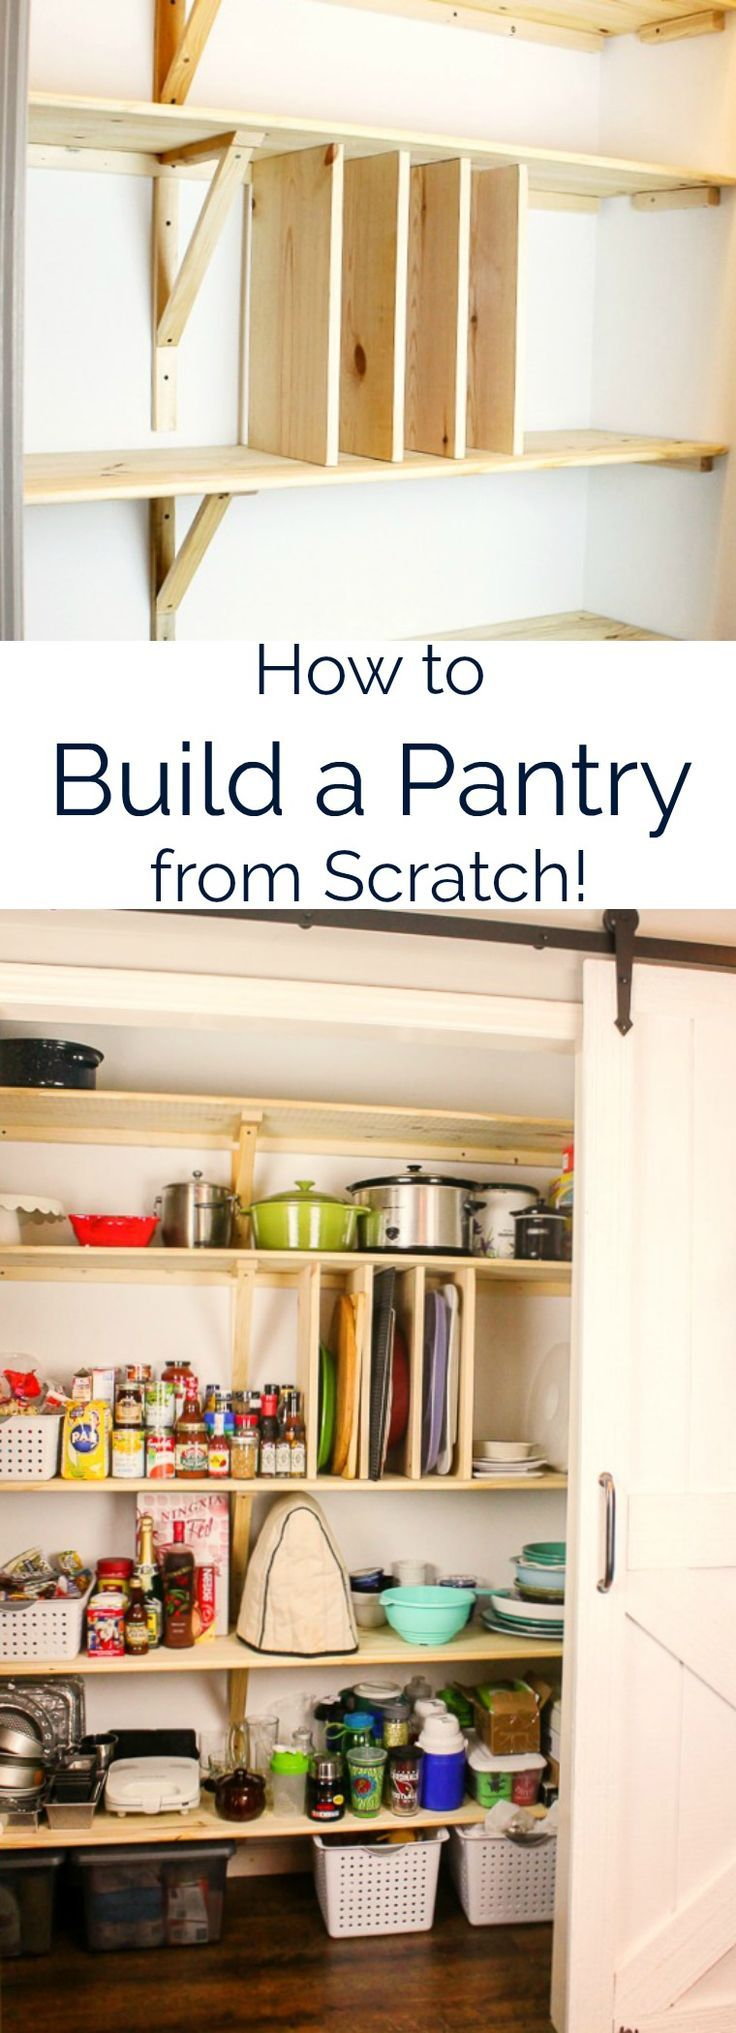 Easy step-by-step directions to build your own pantry in just a weekend! This on... - #Build #directions #Easy #pantry #pantryorganizationideas #pantryredosmall #stepbystep #weekend #pantryshelving